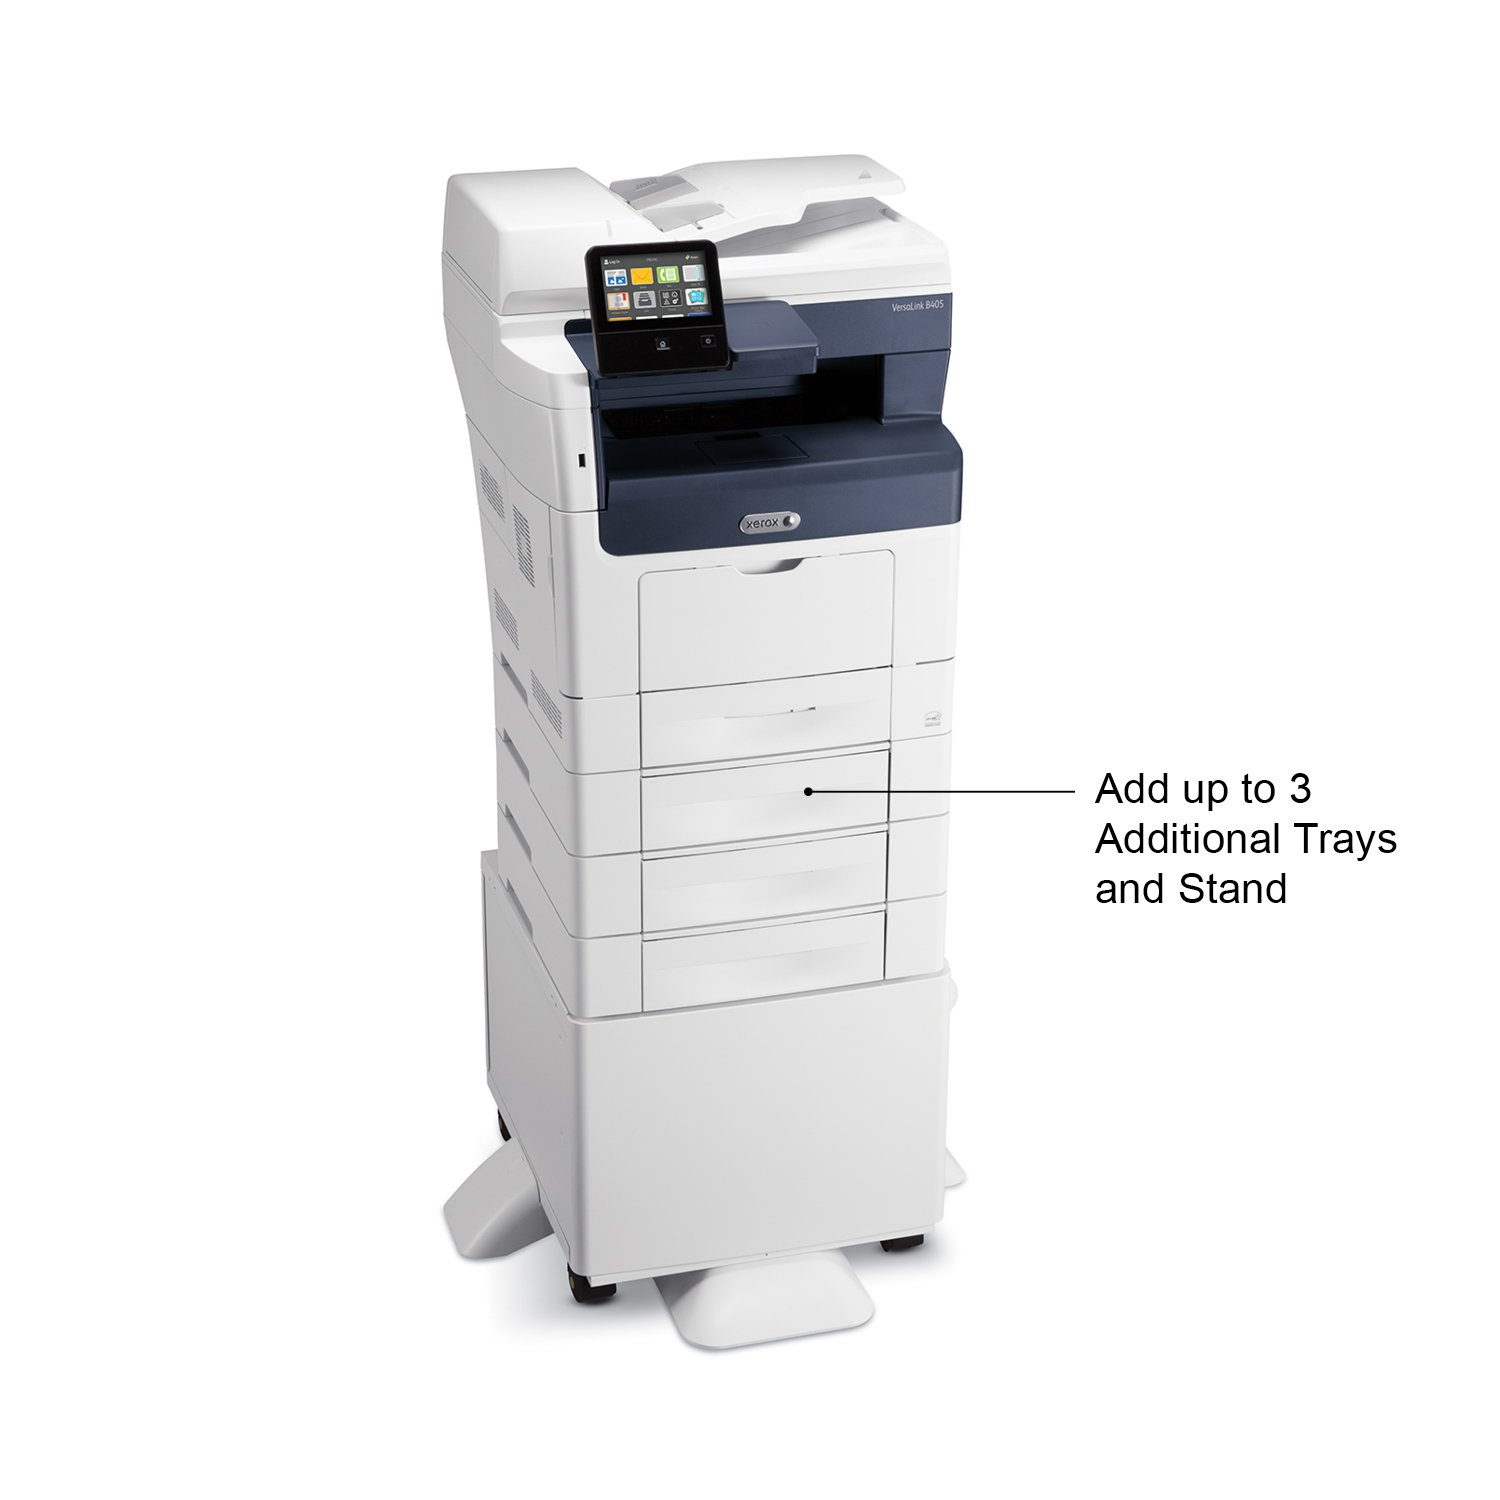 Xerox B405/DN - Black and White MultiFunction Laser Printer, print